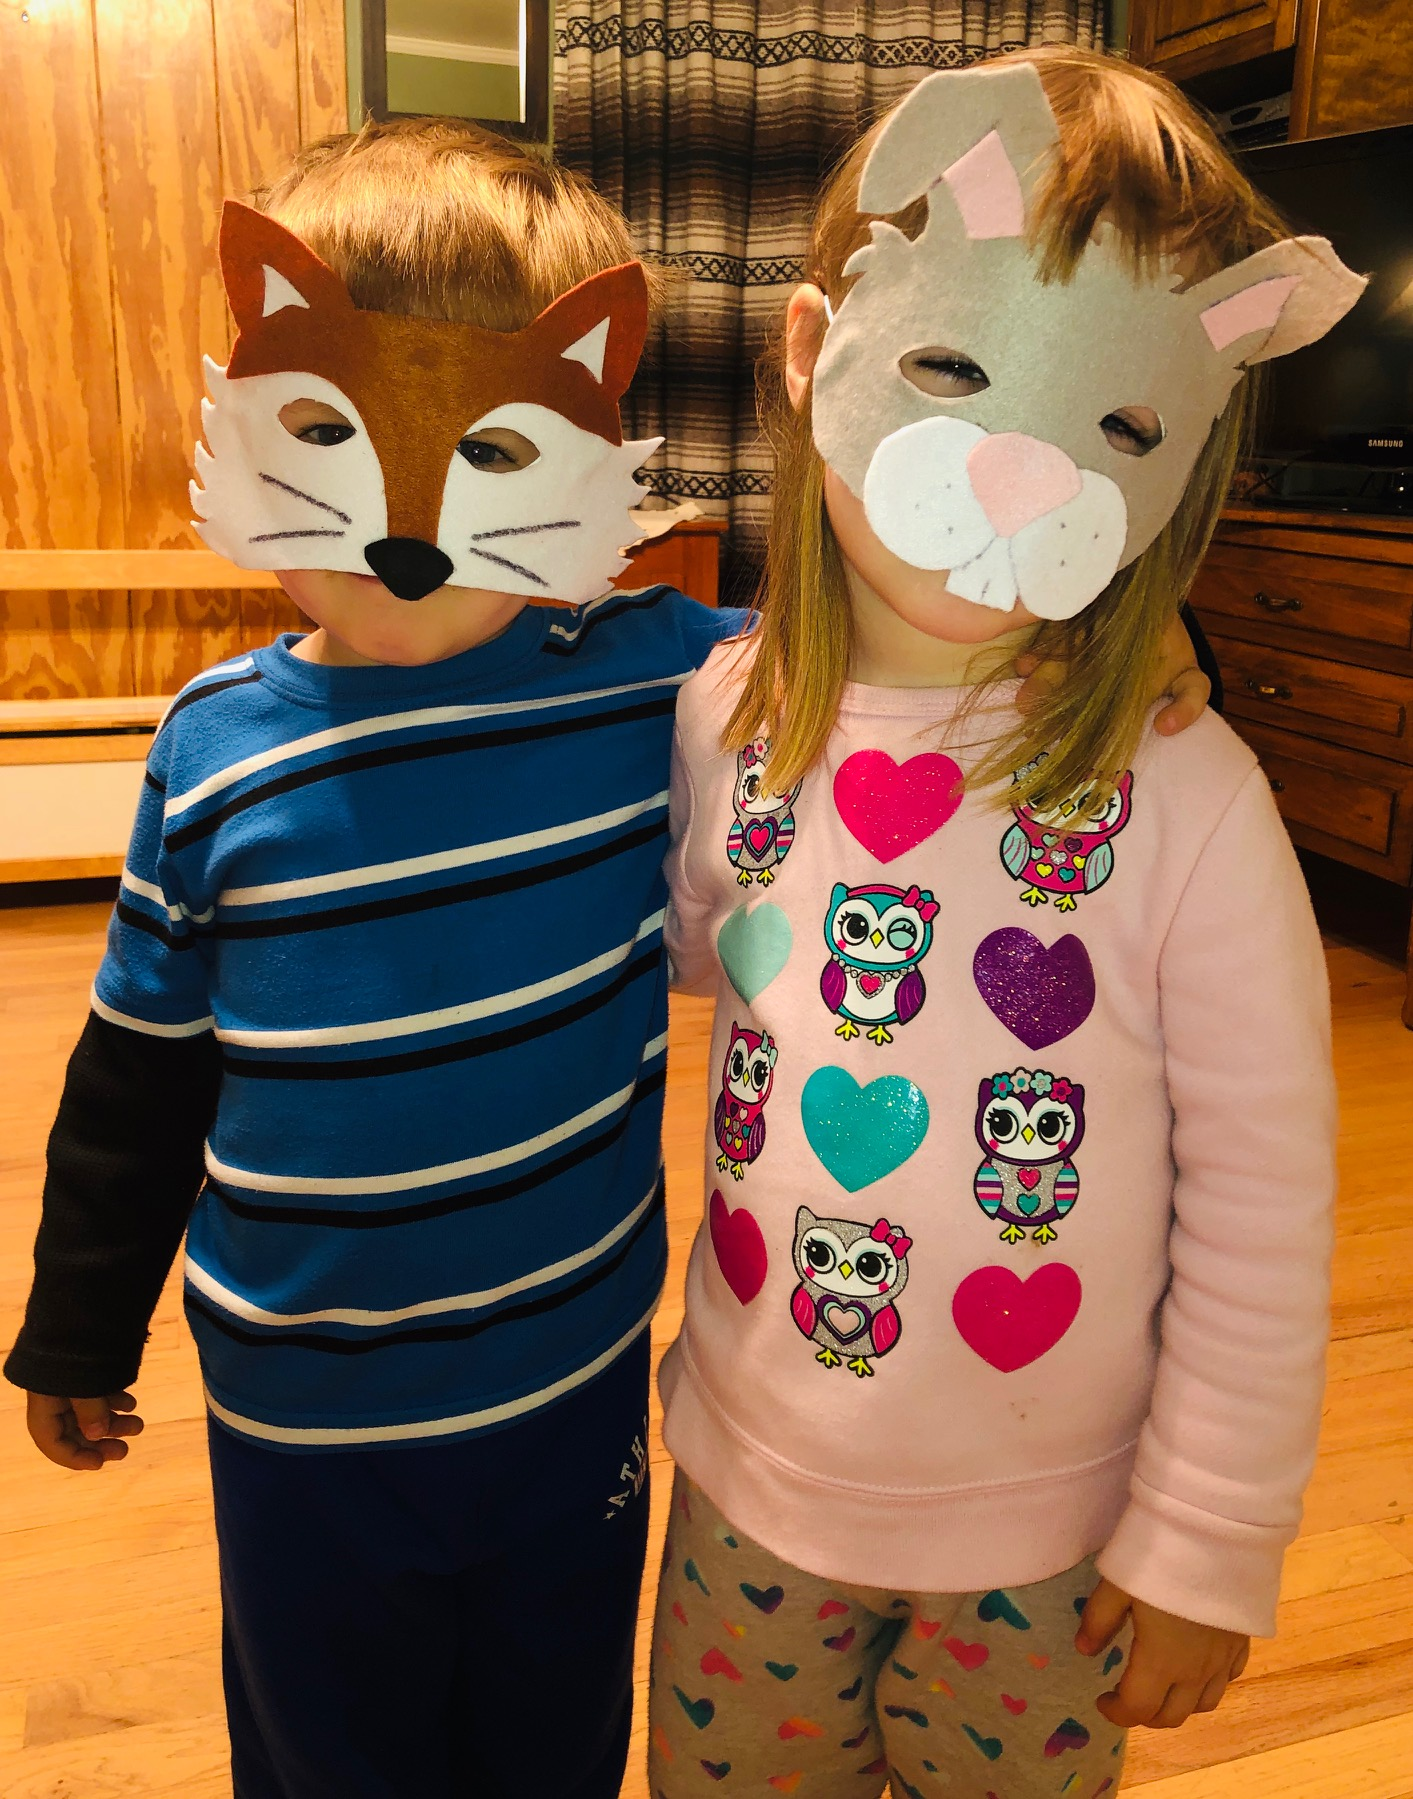 Attendees of Folktales Family Fun, 10-11:30 a.m. Saturday, March 2, will be invited to make masks of the French Creole folktale characters Bouki (left) and Lapin. (PHOTO COURTESY DR. ELISTA ISTRE)